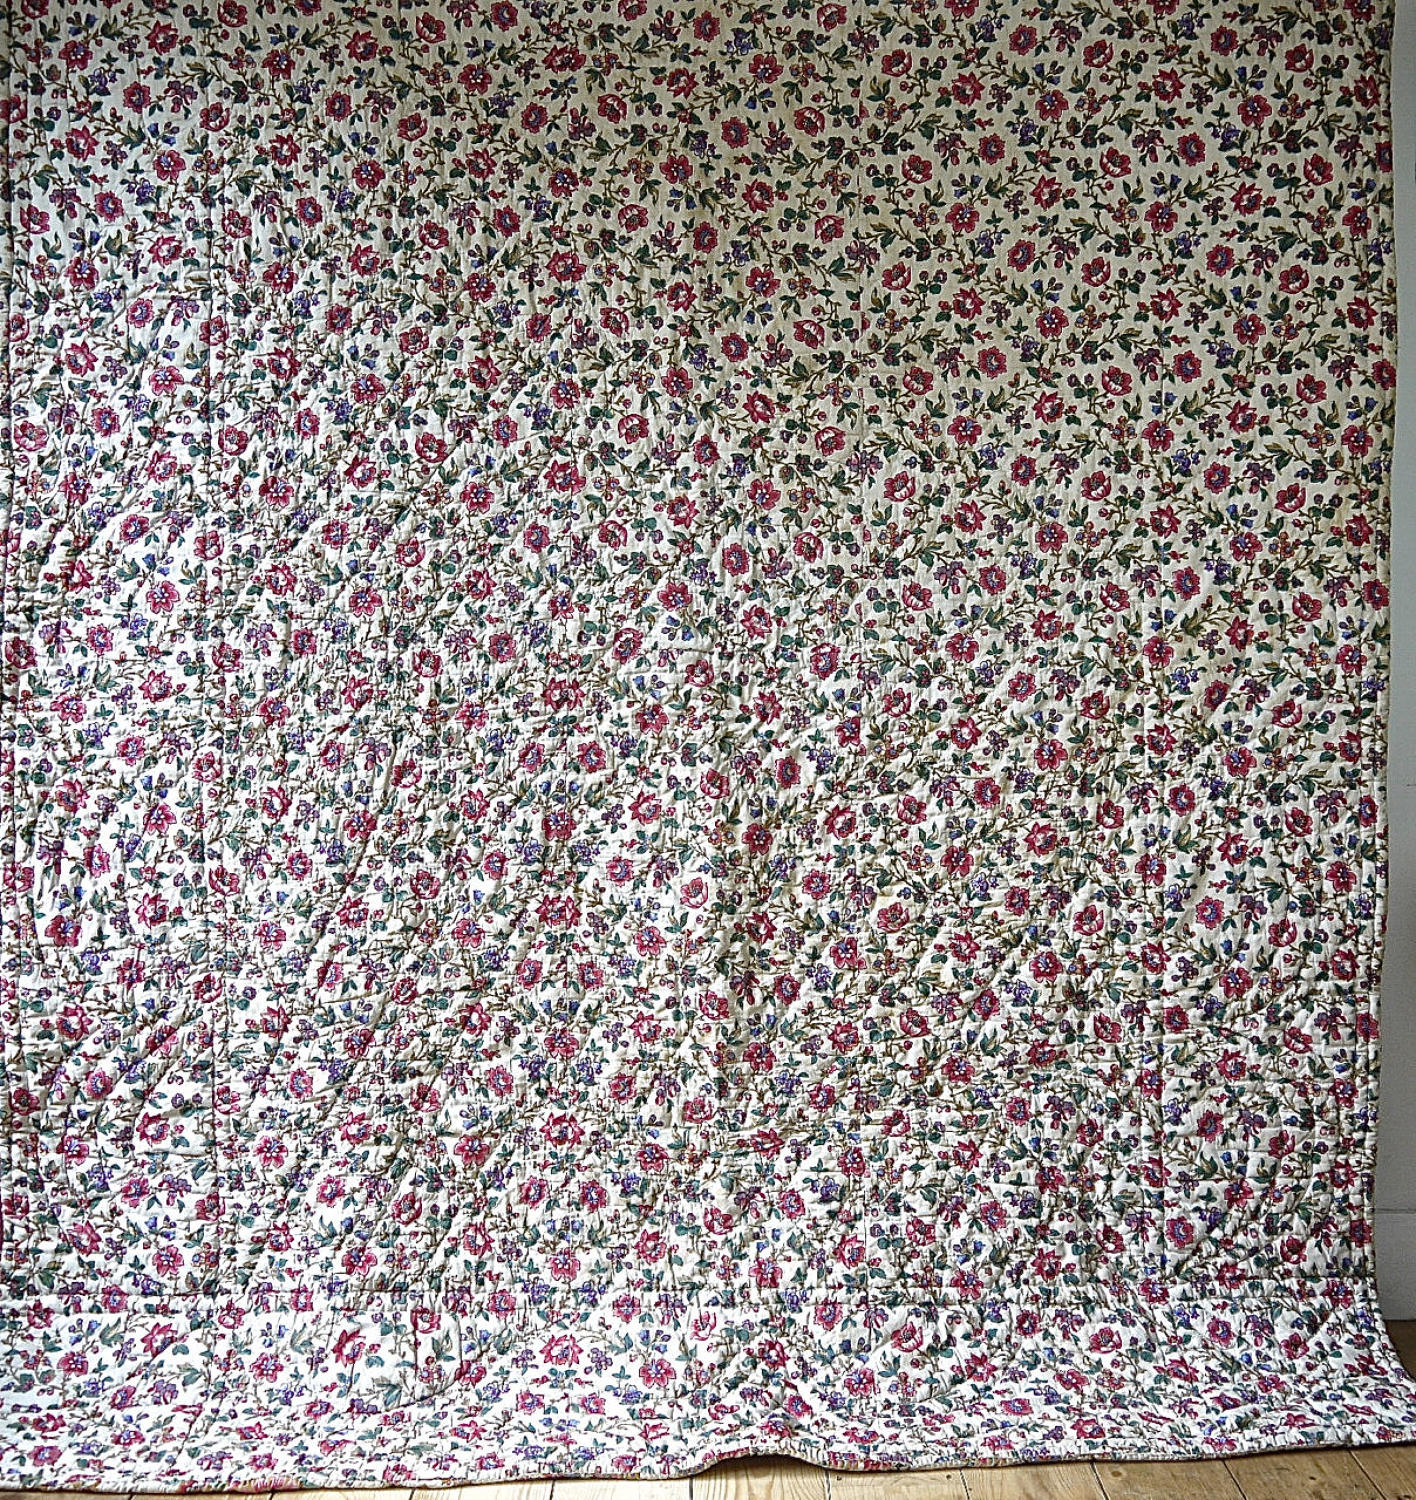 Floral Blockprinted Cotton Quilt French 19th Centuey